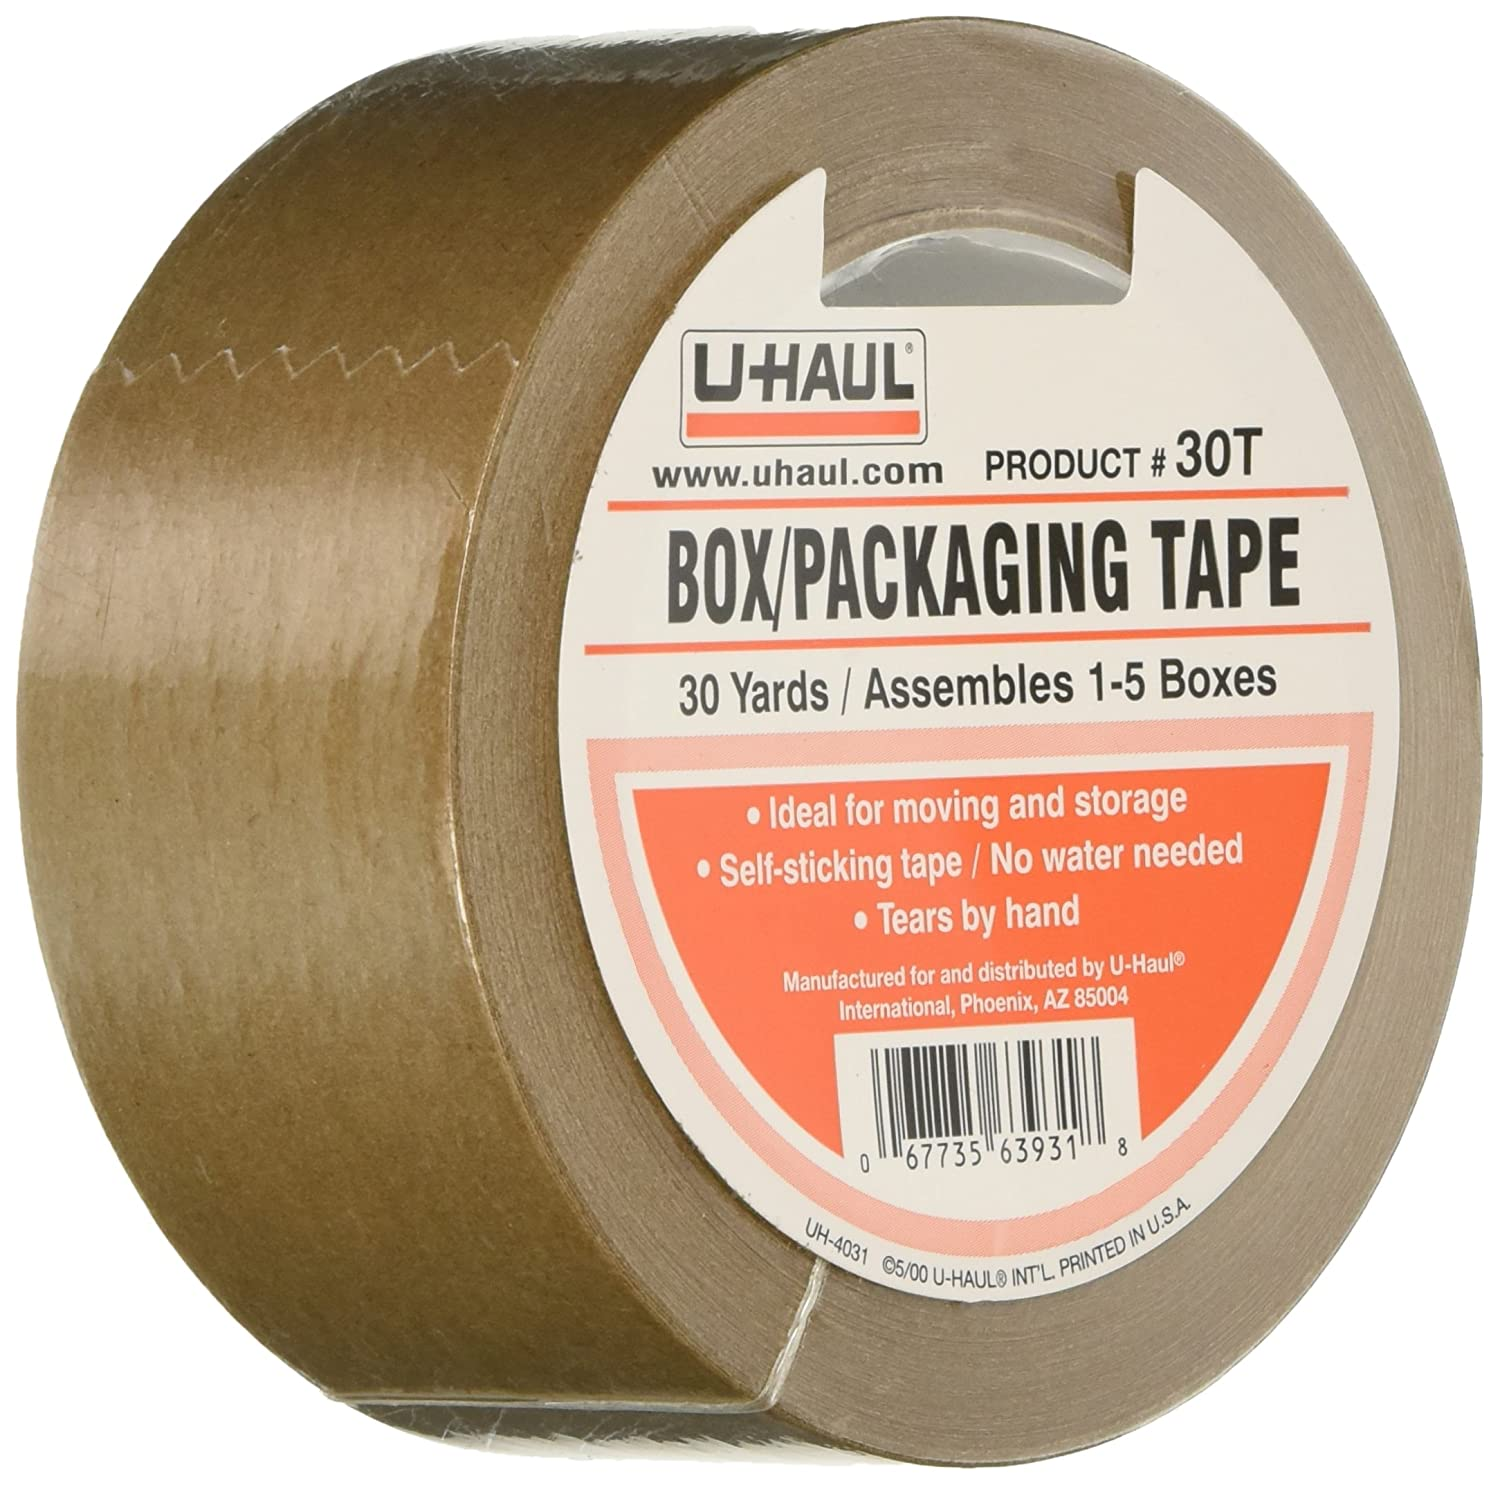 Amazon.com: 3 Rolls of U-Haul Packaging Box Tape 30T / Moving Tape ...